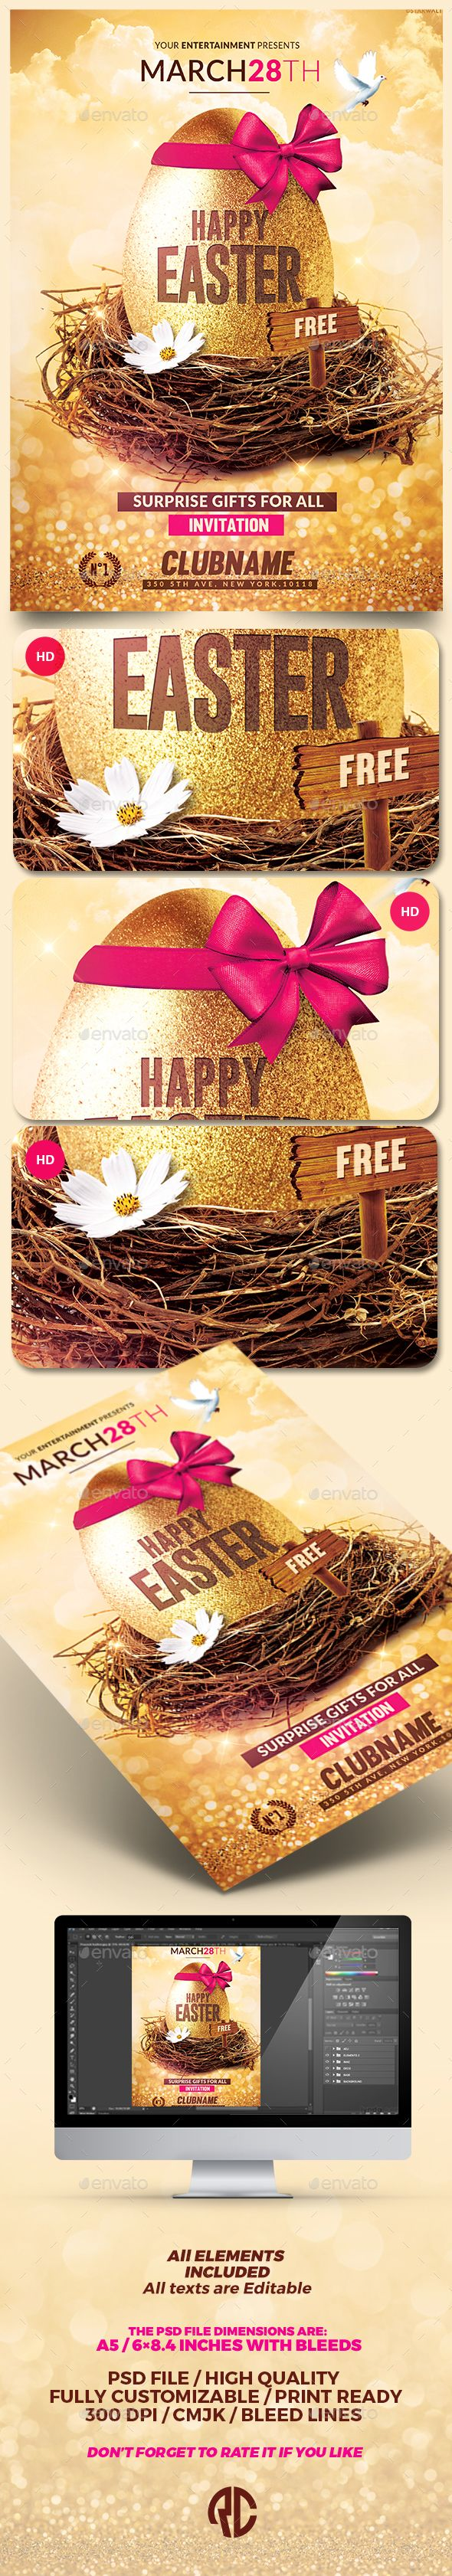 Happy Easter | Flyer Psd Template | Creative Flyer |Psd Available. #flyer #template #party  Thanks for The Watching !